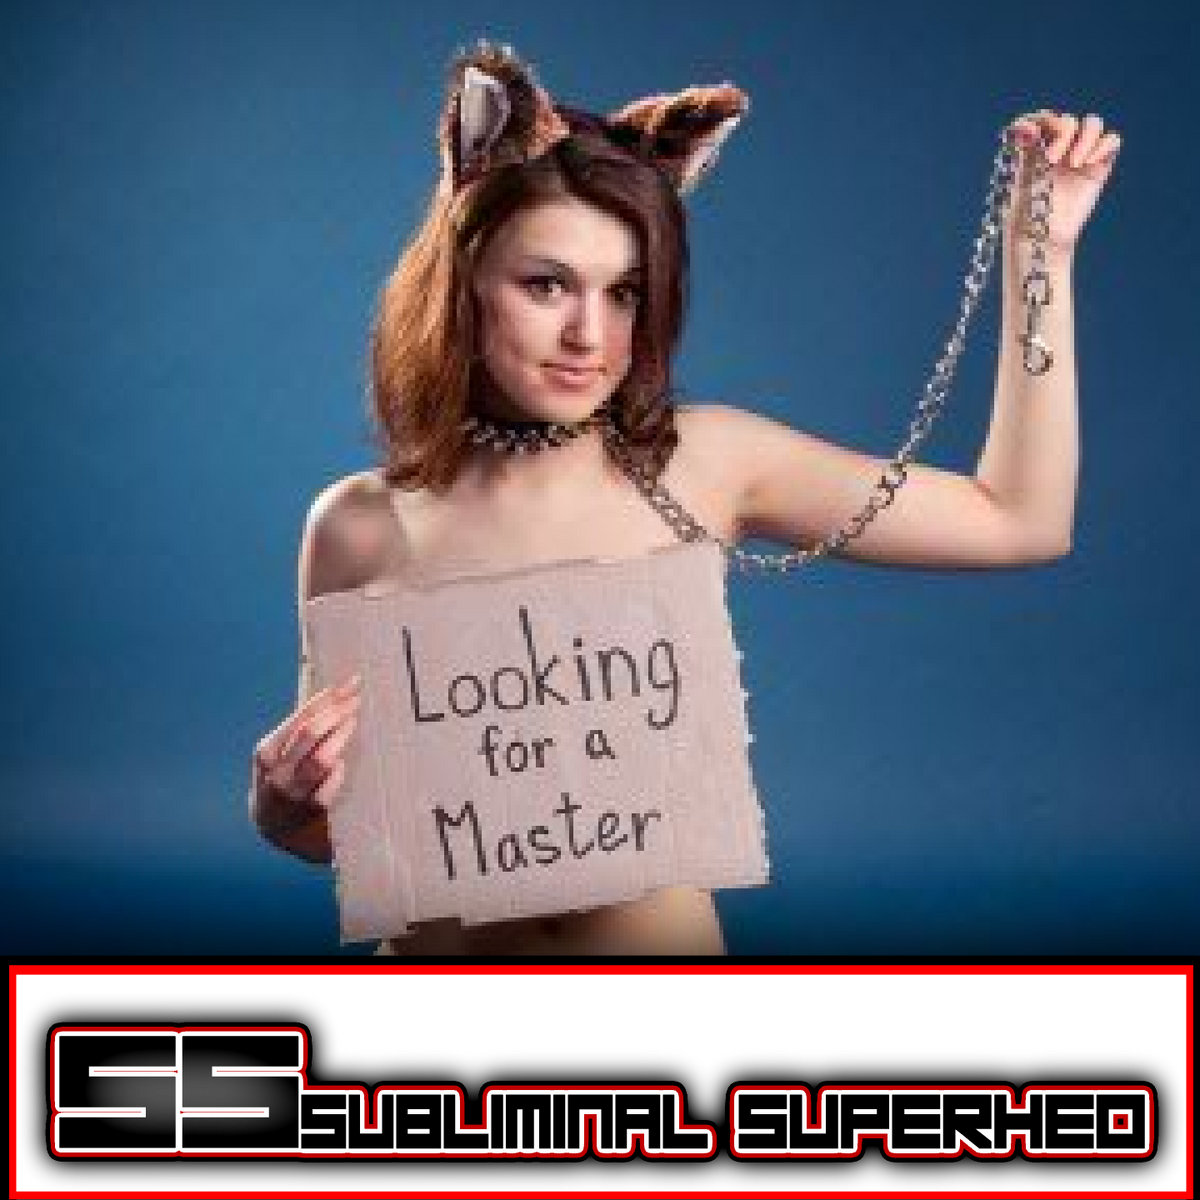 ♫ Be My Submissive Girl ♫ Subliminal Frequency Hypnosis